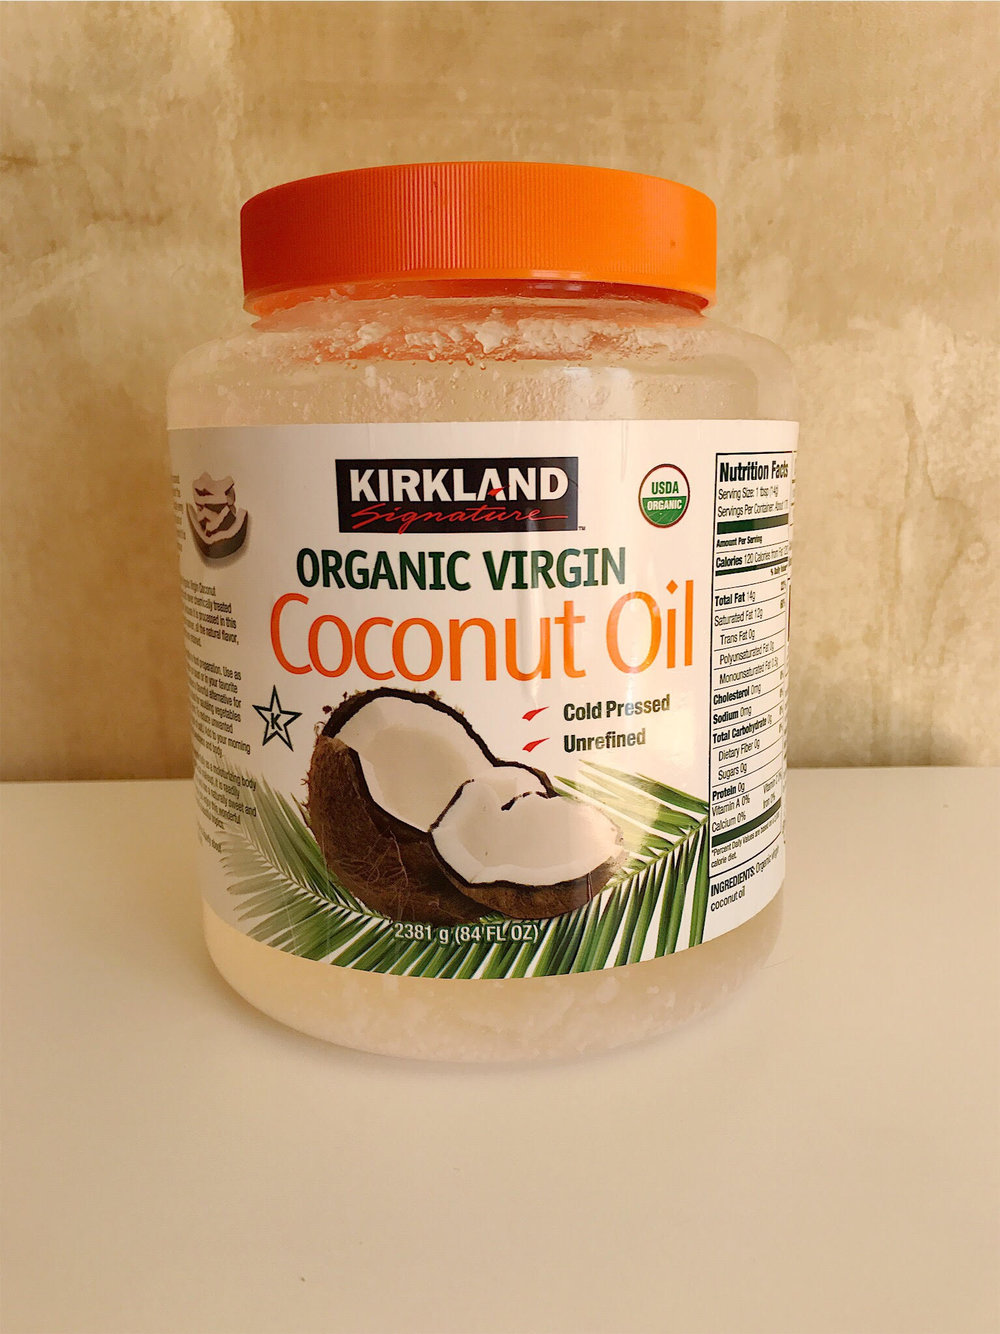 Almost empty coconut oil container.  I'll probably restock once it's gone.